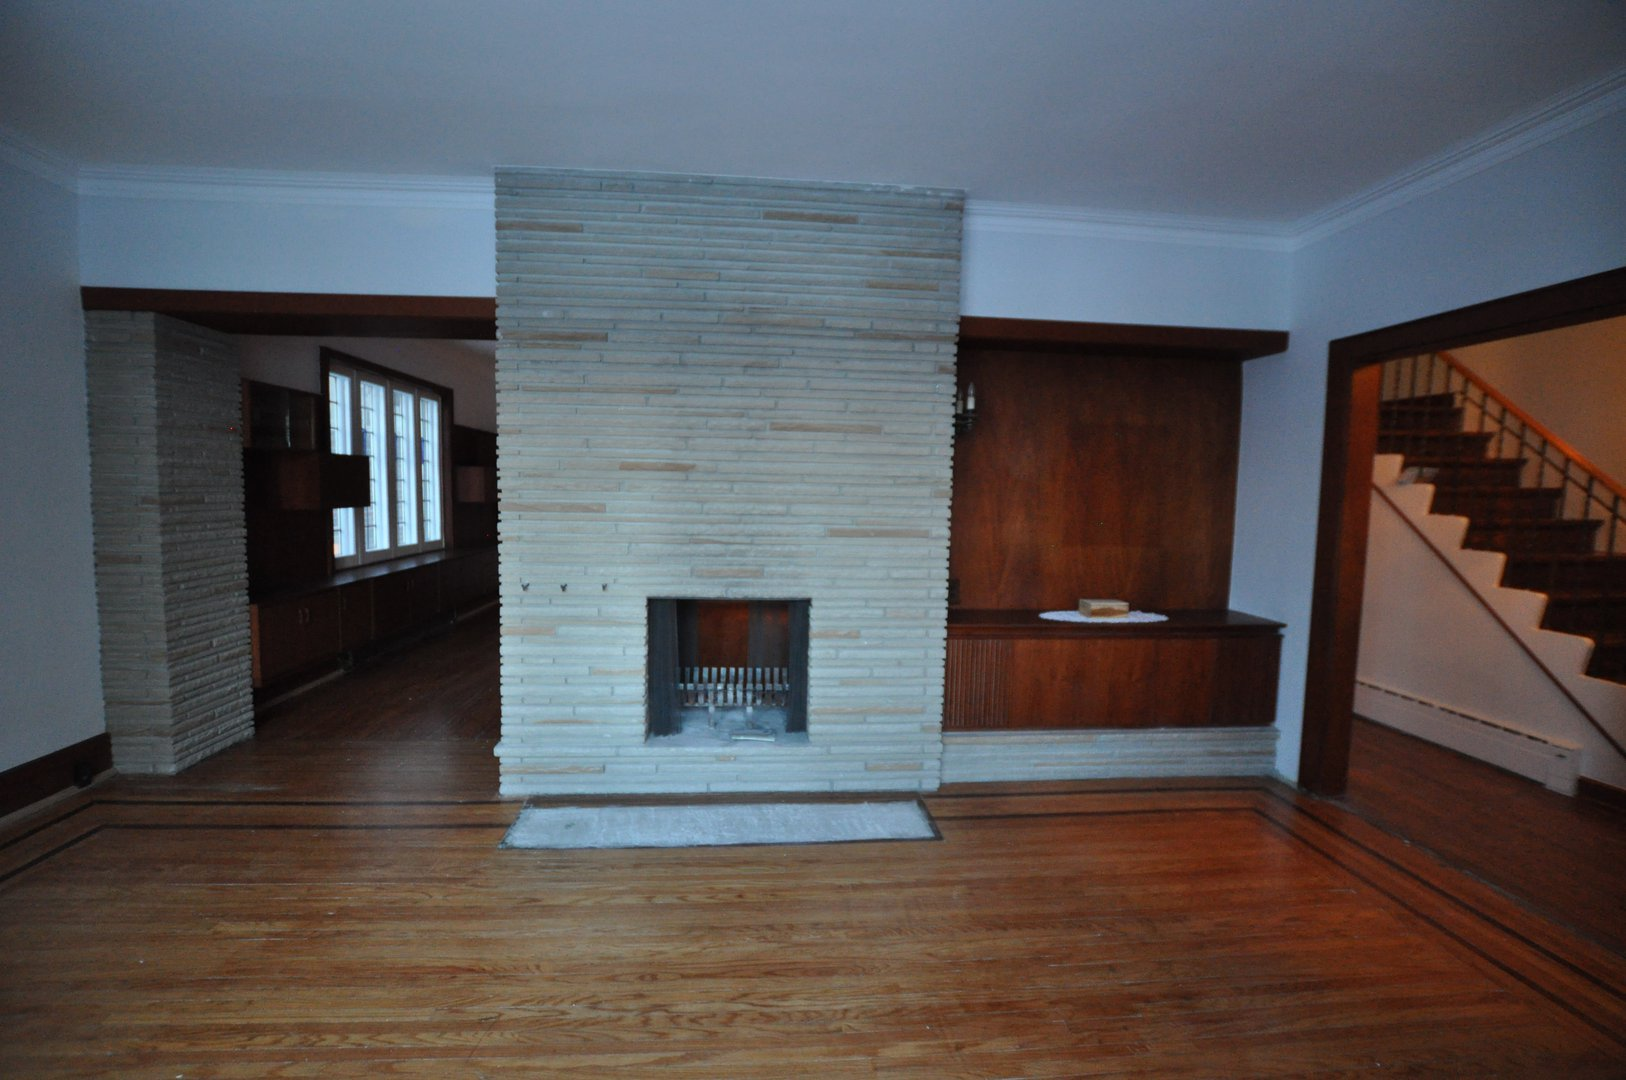 House for rent at 4 Blantyre Ave, Scarborough, ON.